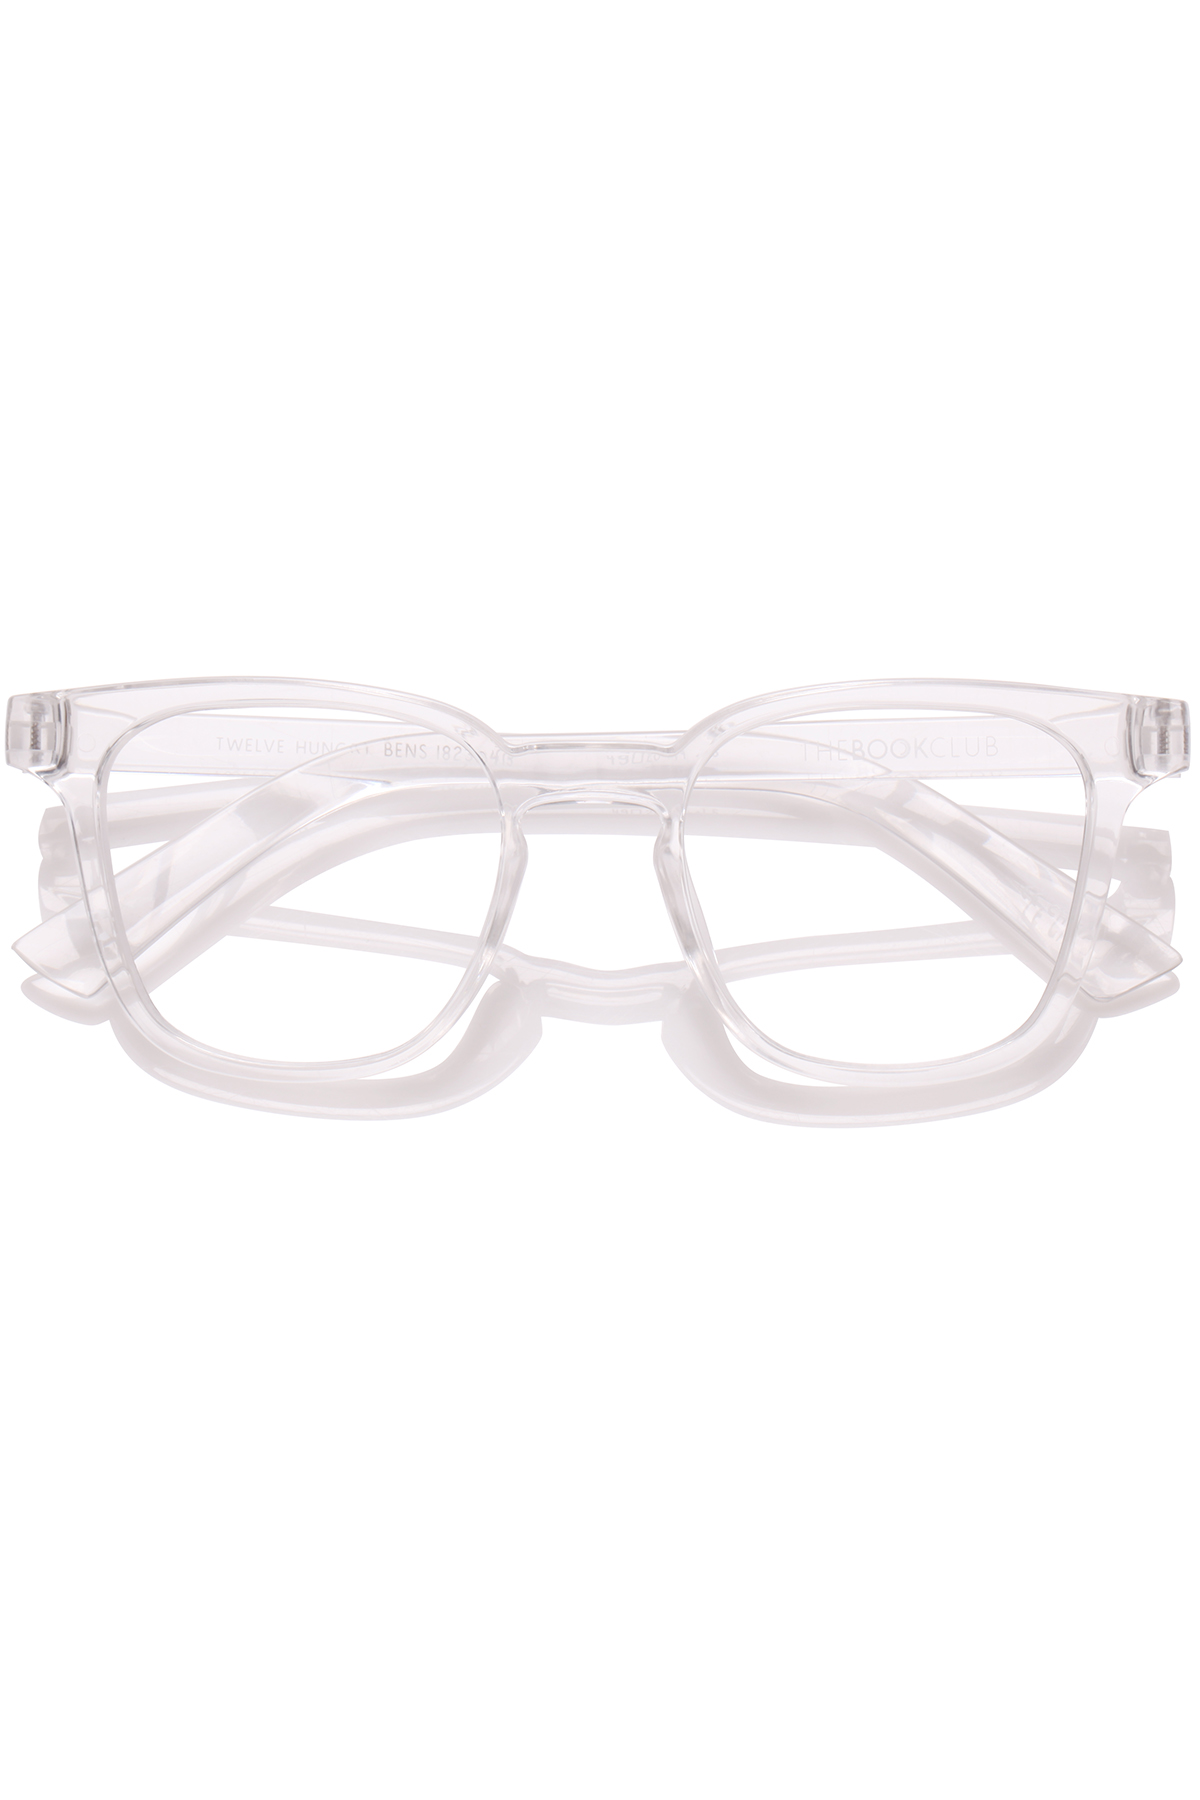 Twelve Hungry Bens Reading Glasses (+1.5 Strength) - Cellophane 2